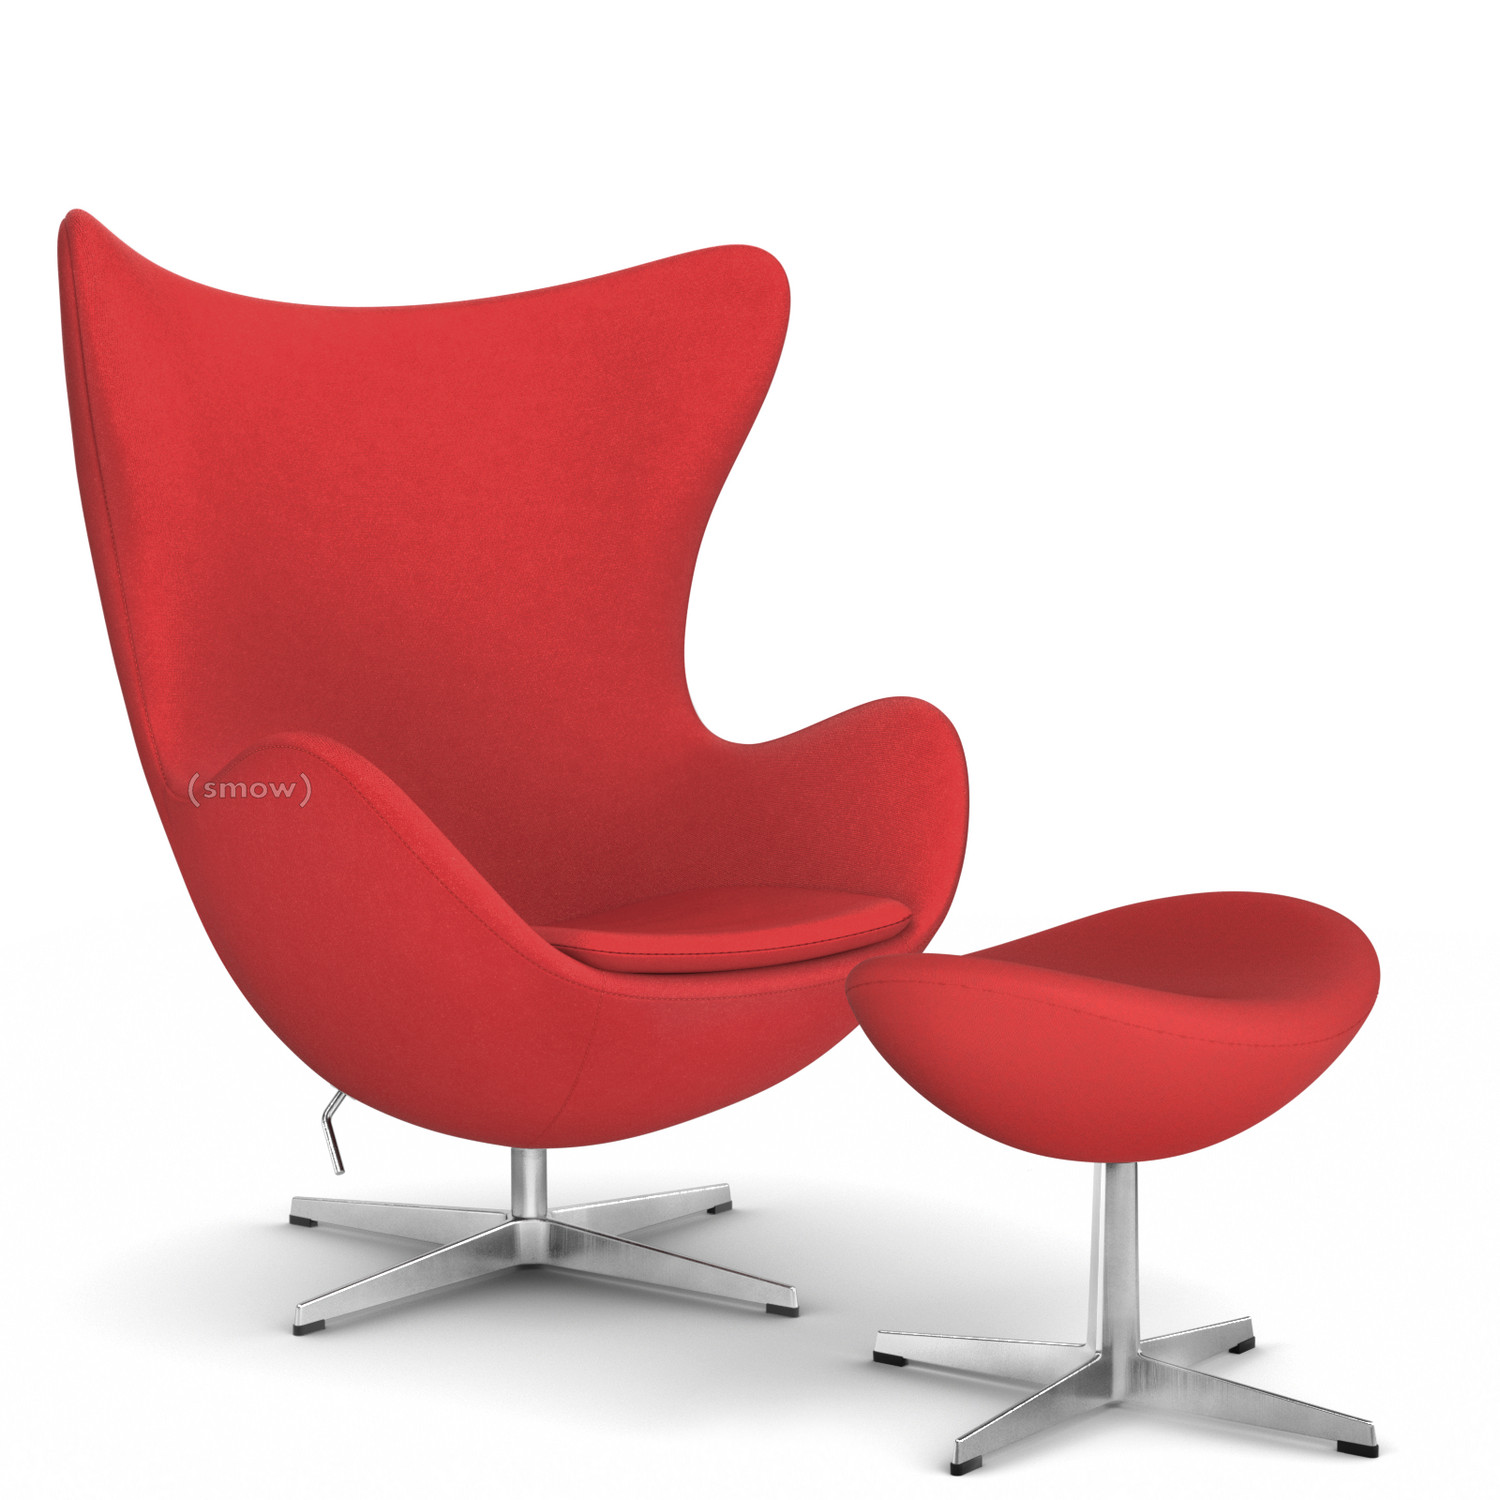 Fritz Hansen Egg Chair Divina Divina 623 Red With Footstool By Arne Jacobsen 1958 Designer Furniture By Smow Com